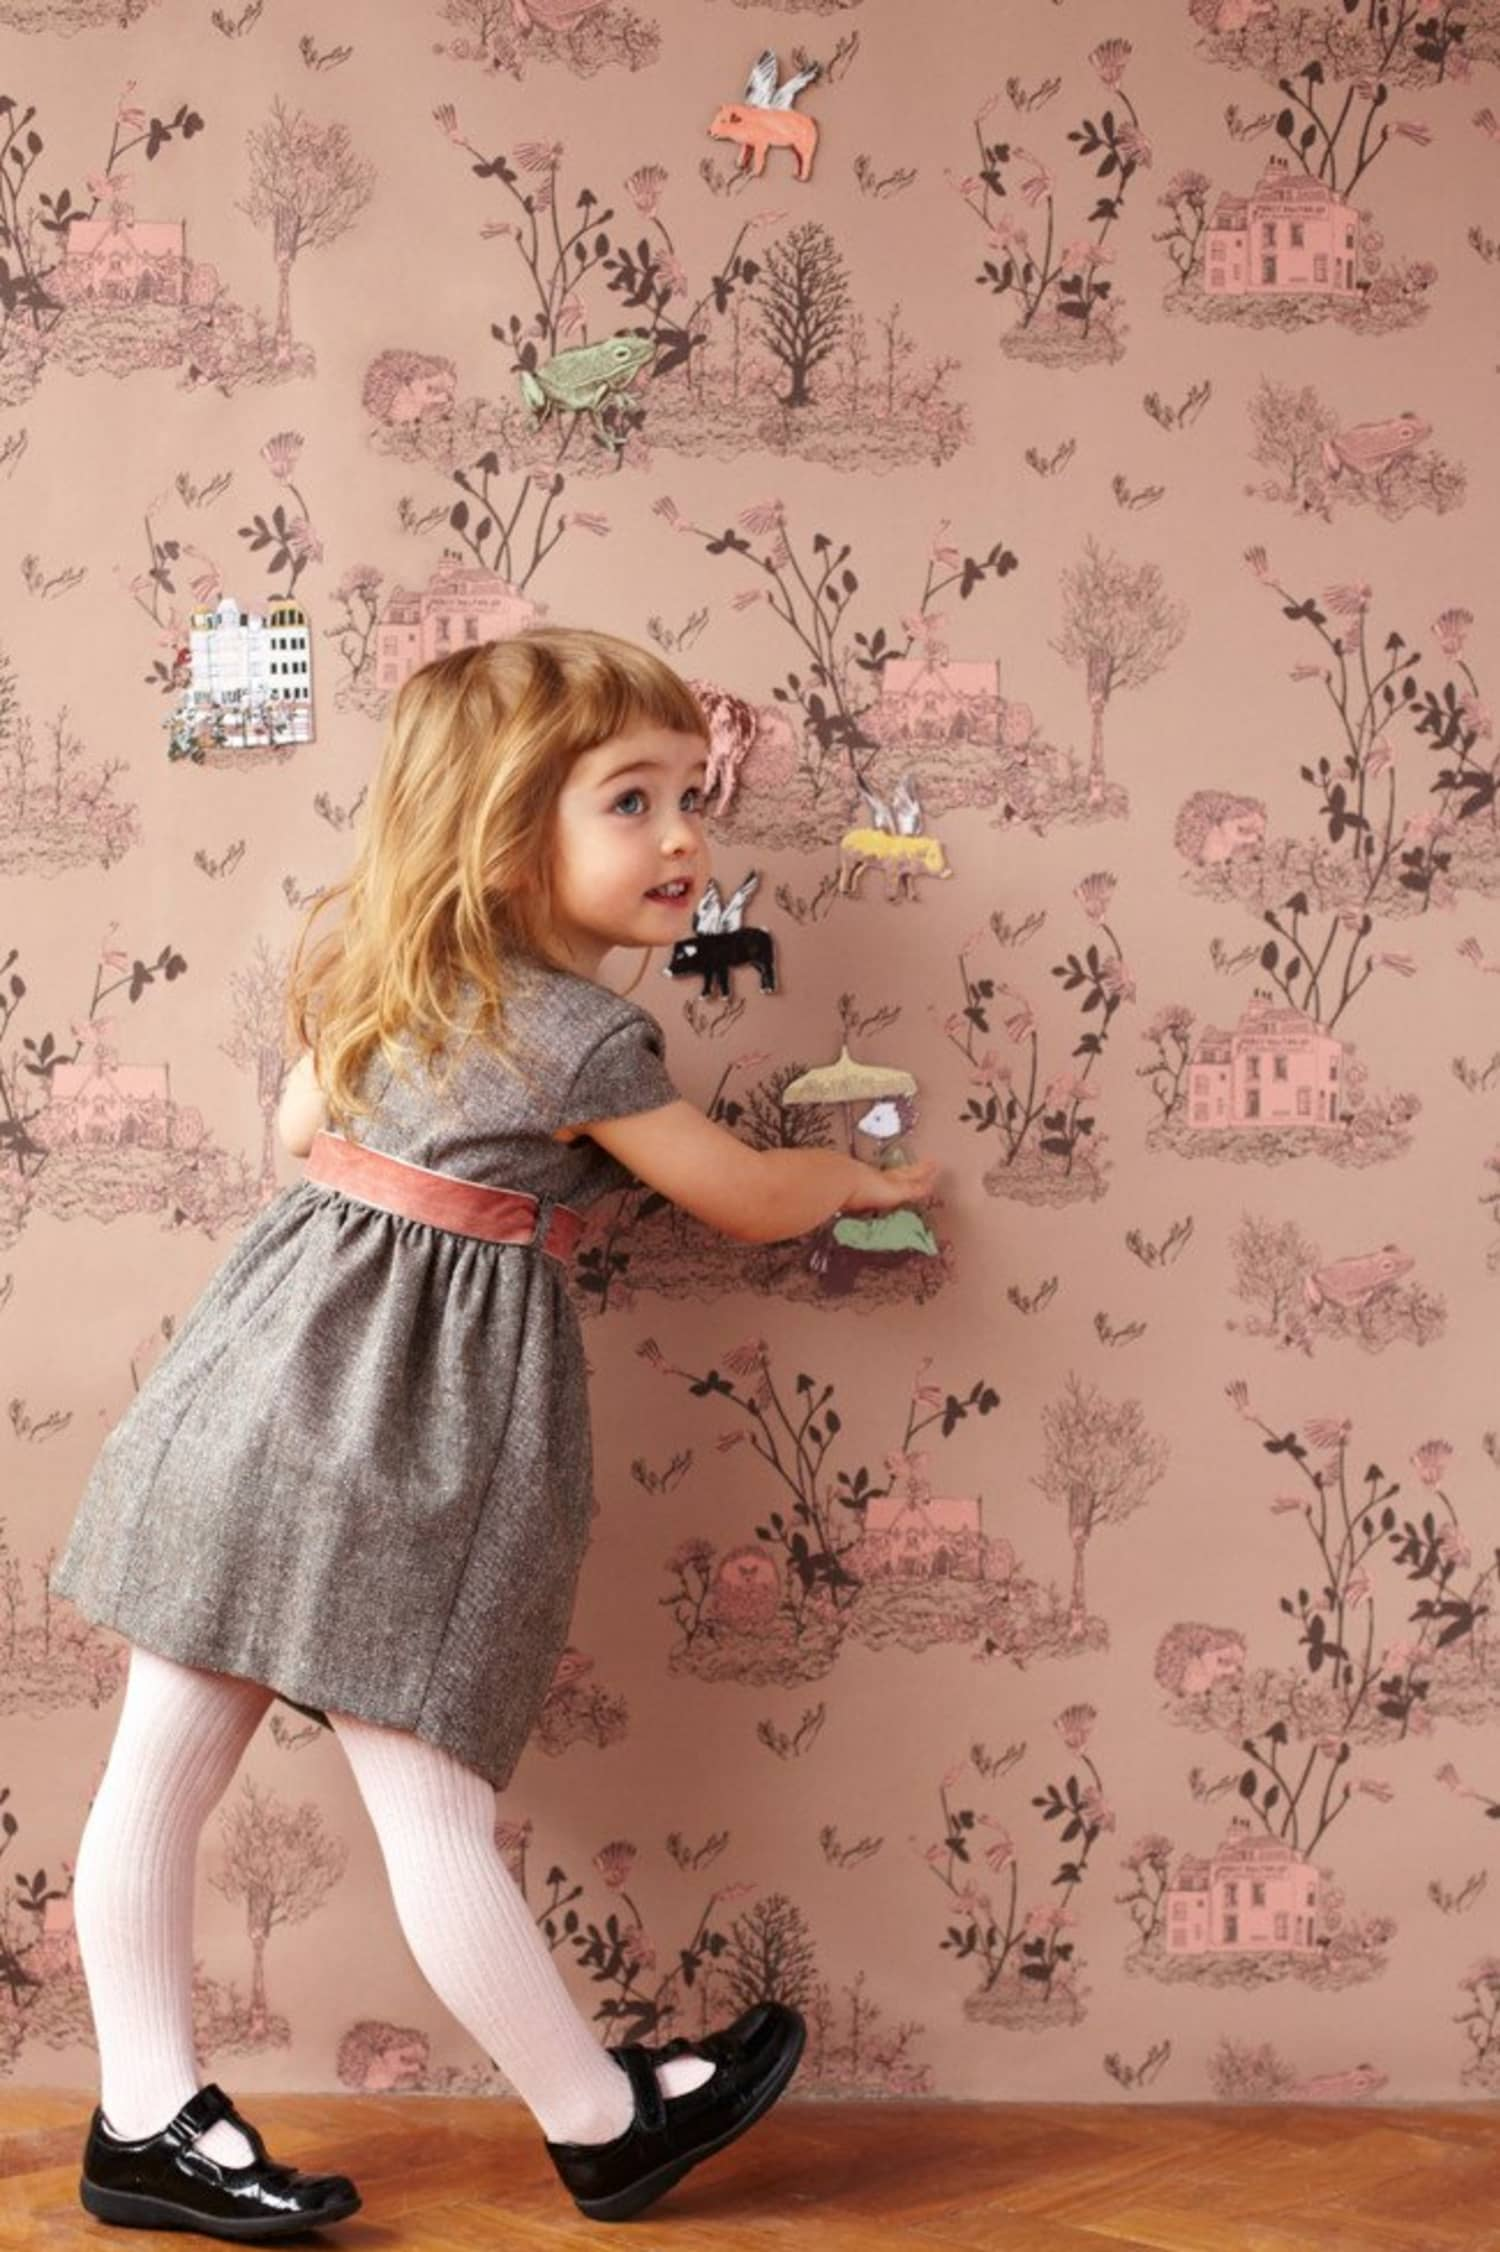 5 Interactive Wallpapers for Kids